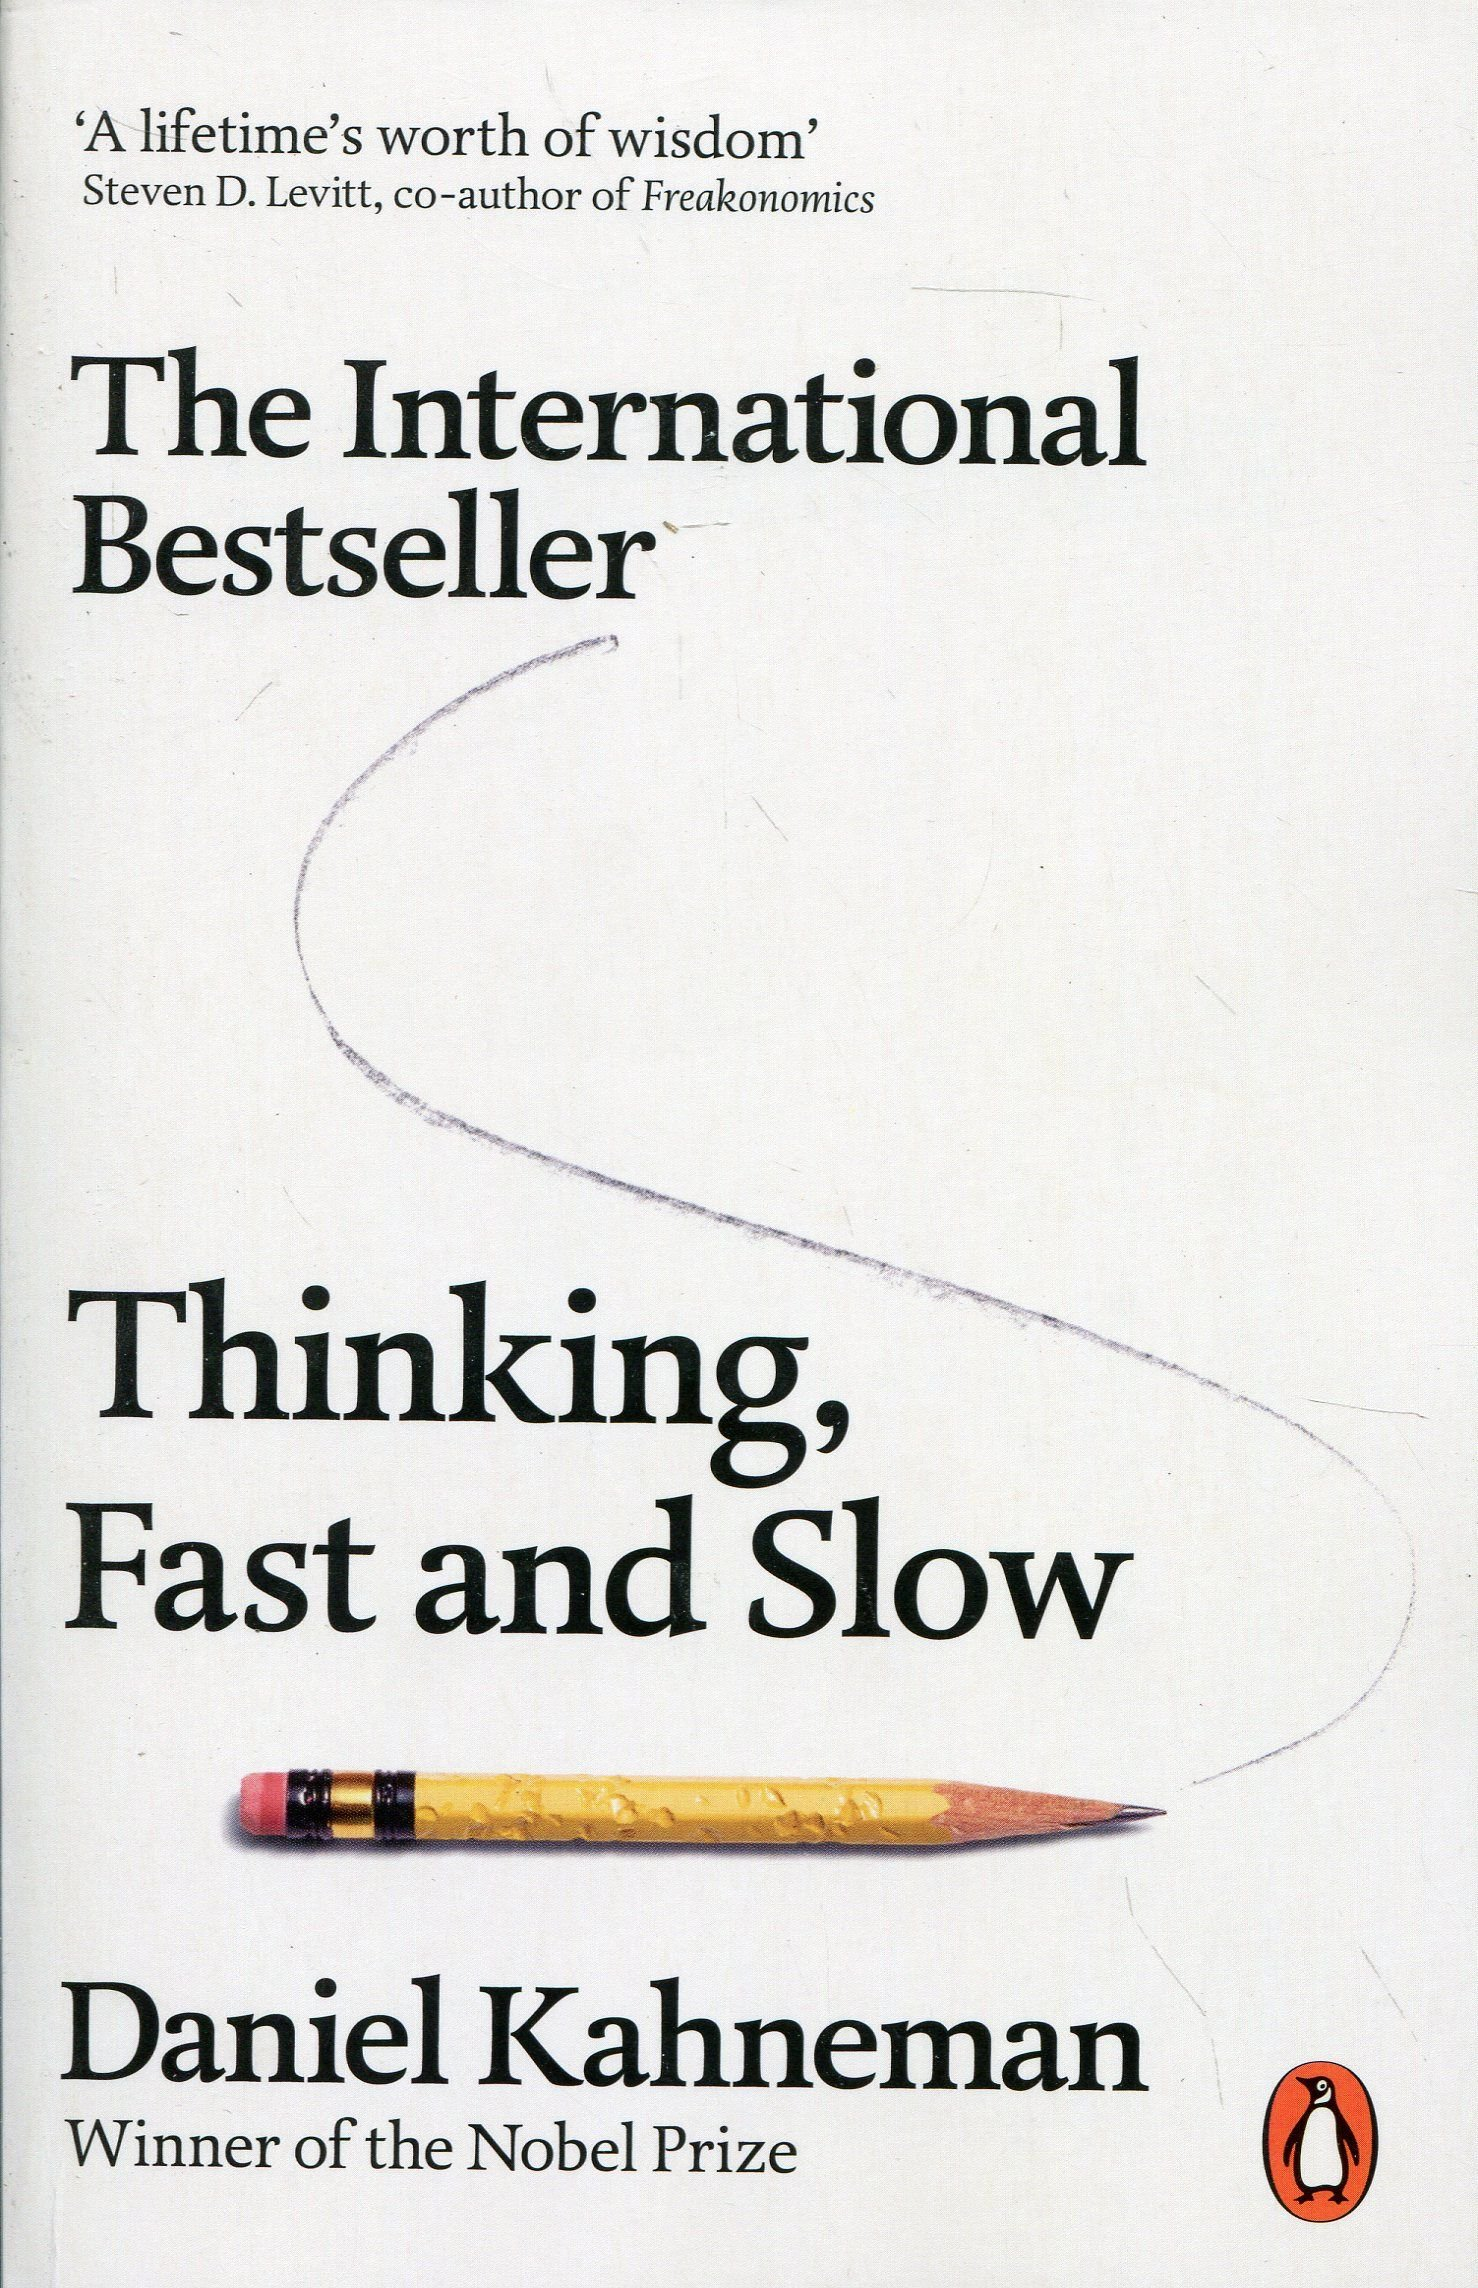 Thinking, Fast and Slow: Amazon.de: Daniel Kahneman: Fremdsprachige Bücher